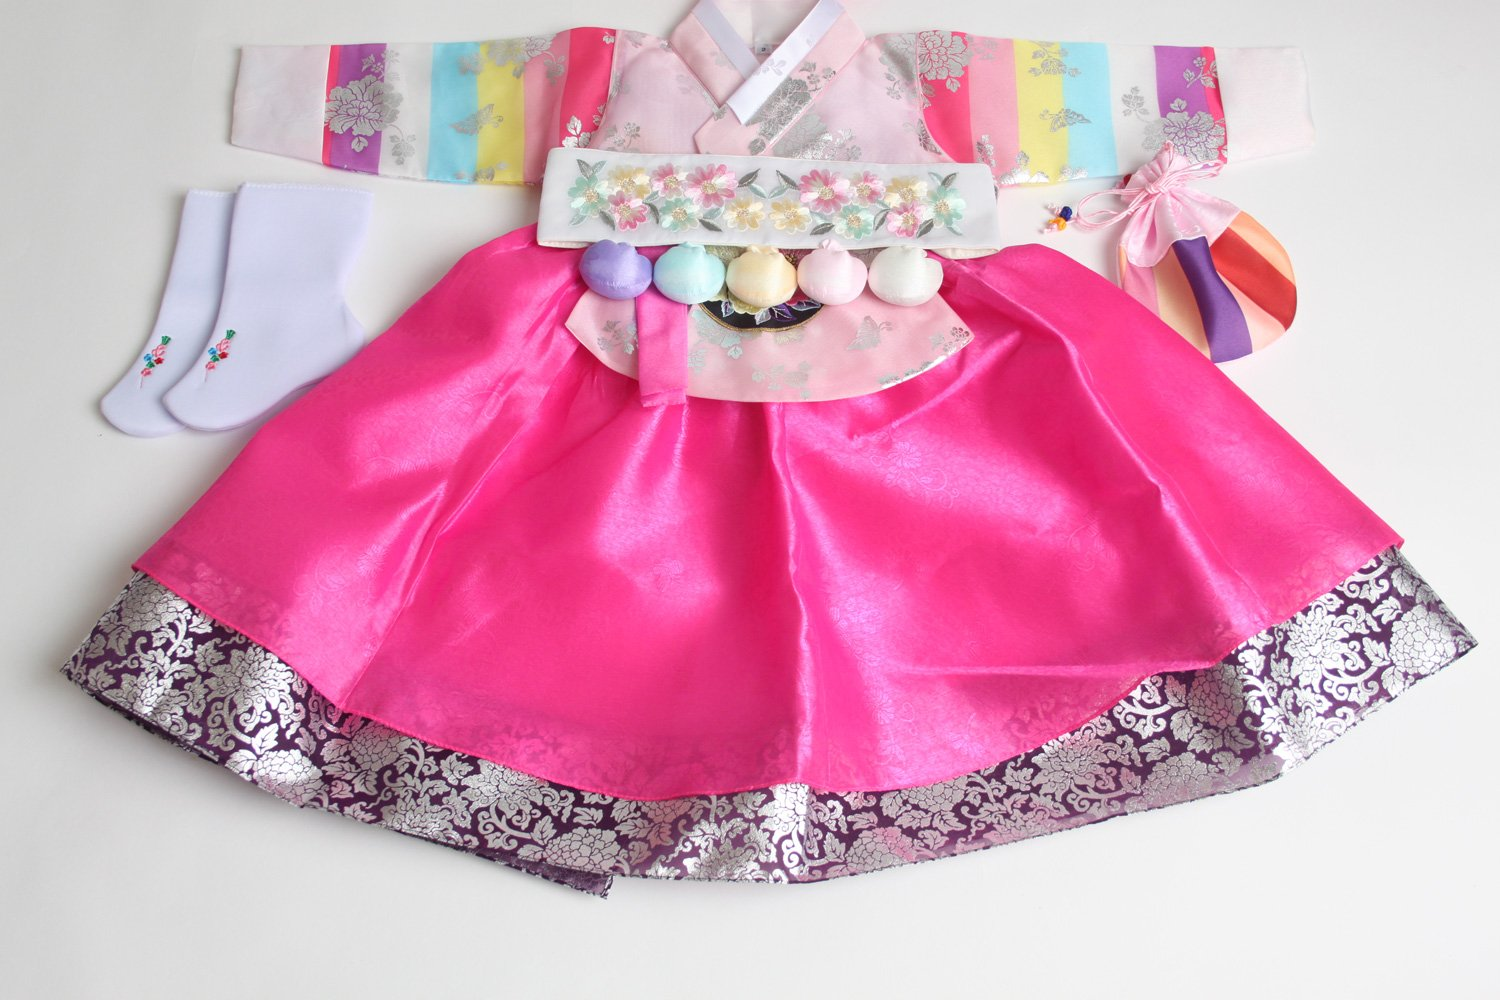 Korean hanbok girls DOLBOK 1st birthday traditional costumes hb062 by hanbok store (Image #5)